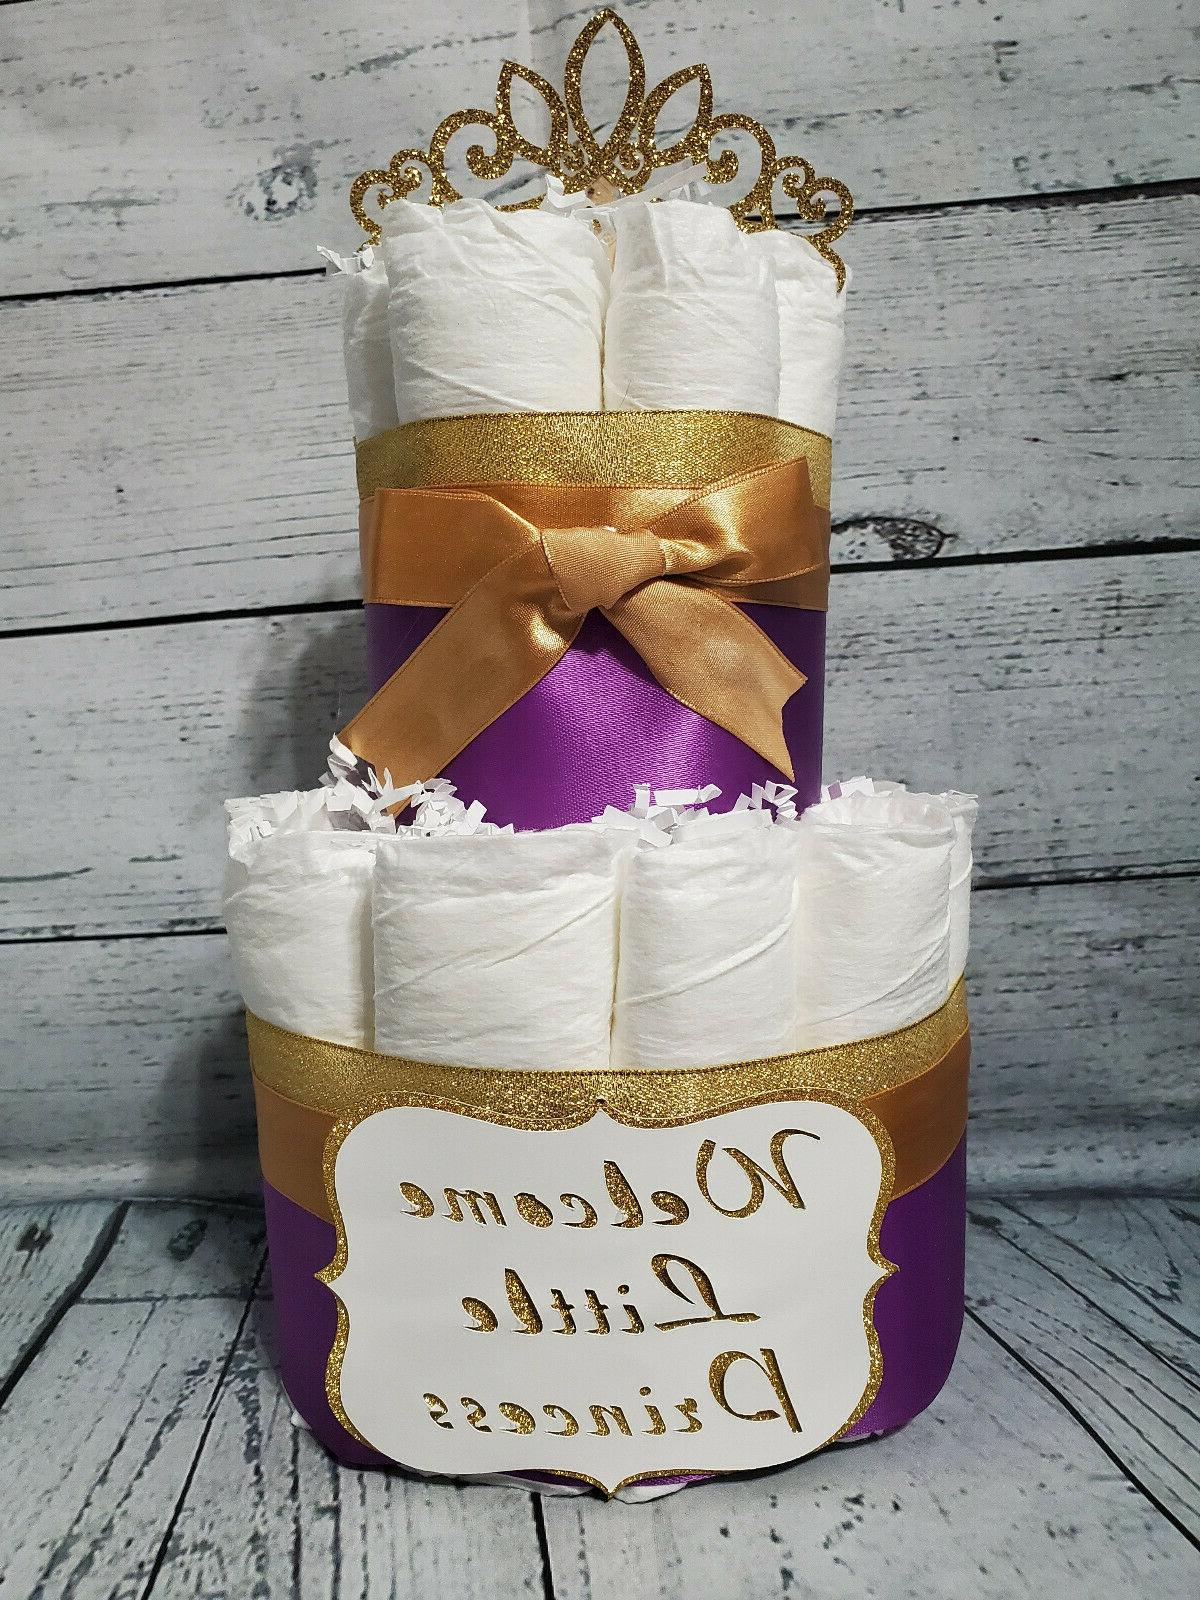 2 Tier Diaper - Royal Purple and Cake for